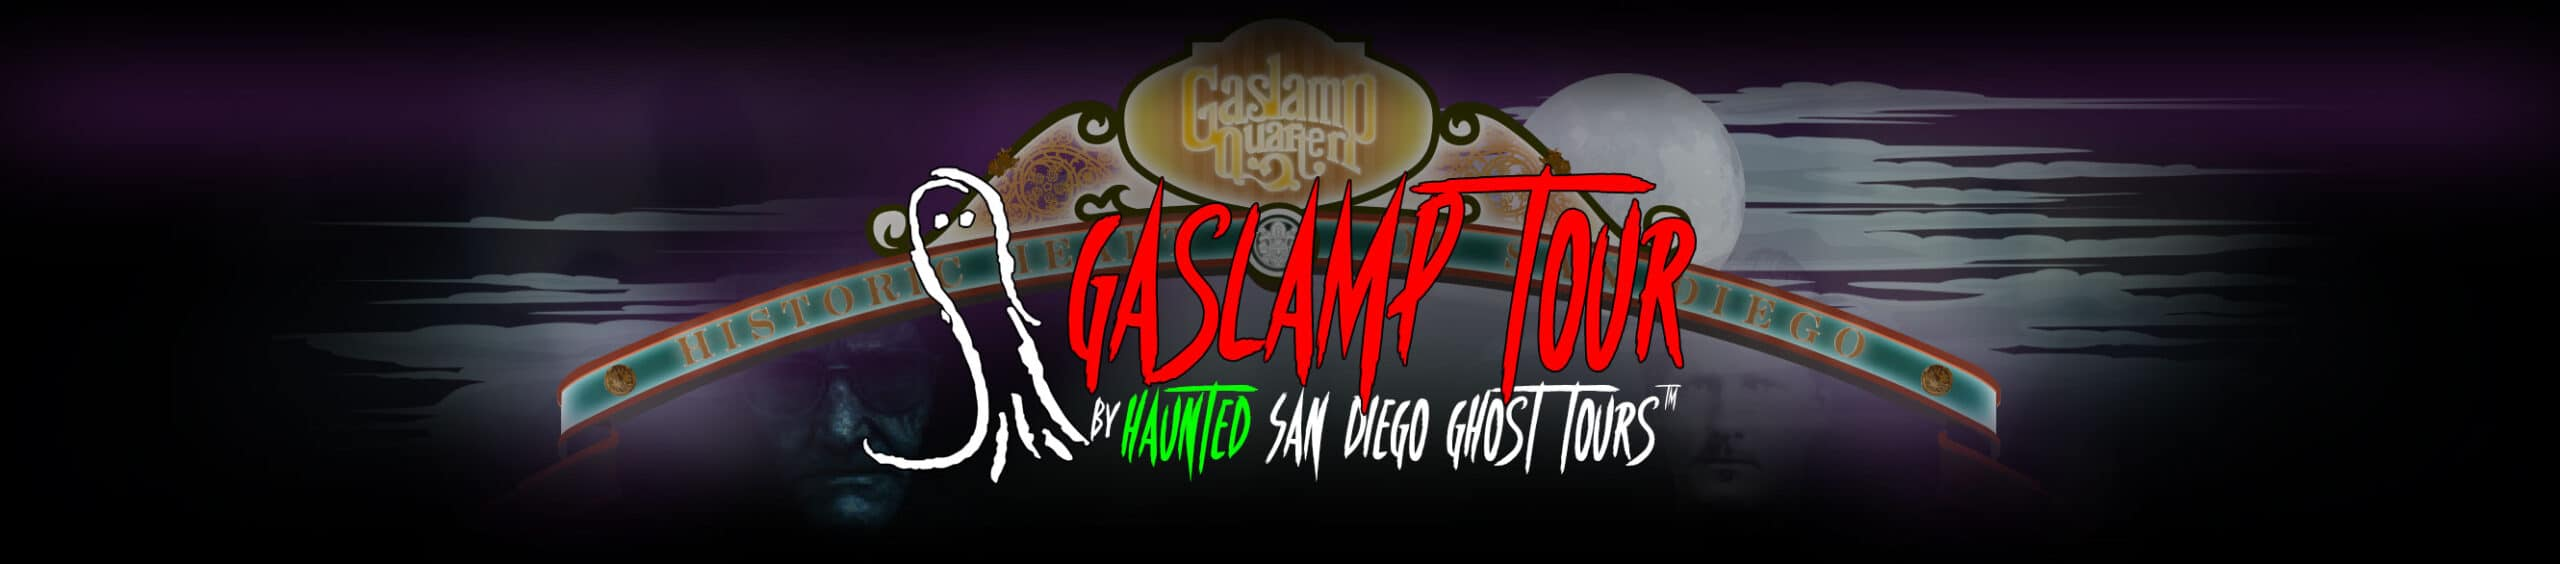 haunted-san-diego-gaslamp-tour-hero-new-bigger-e